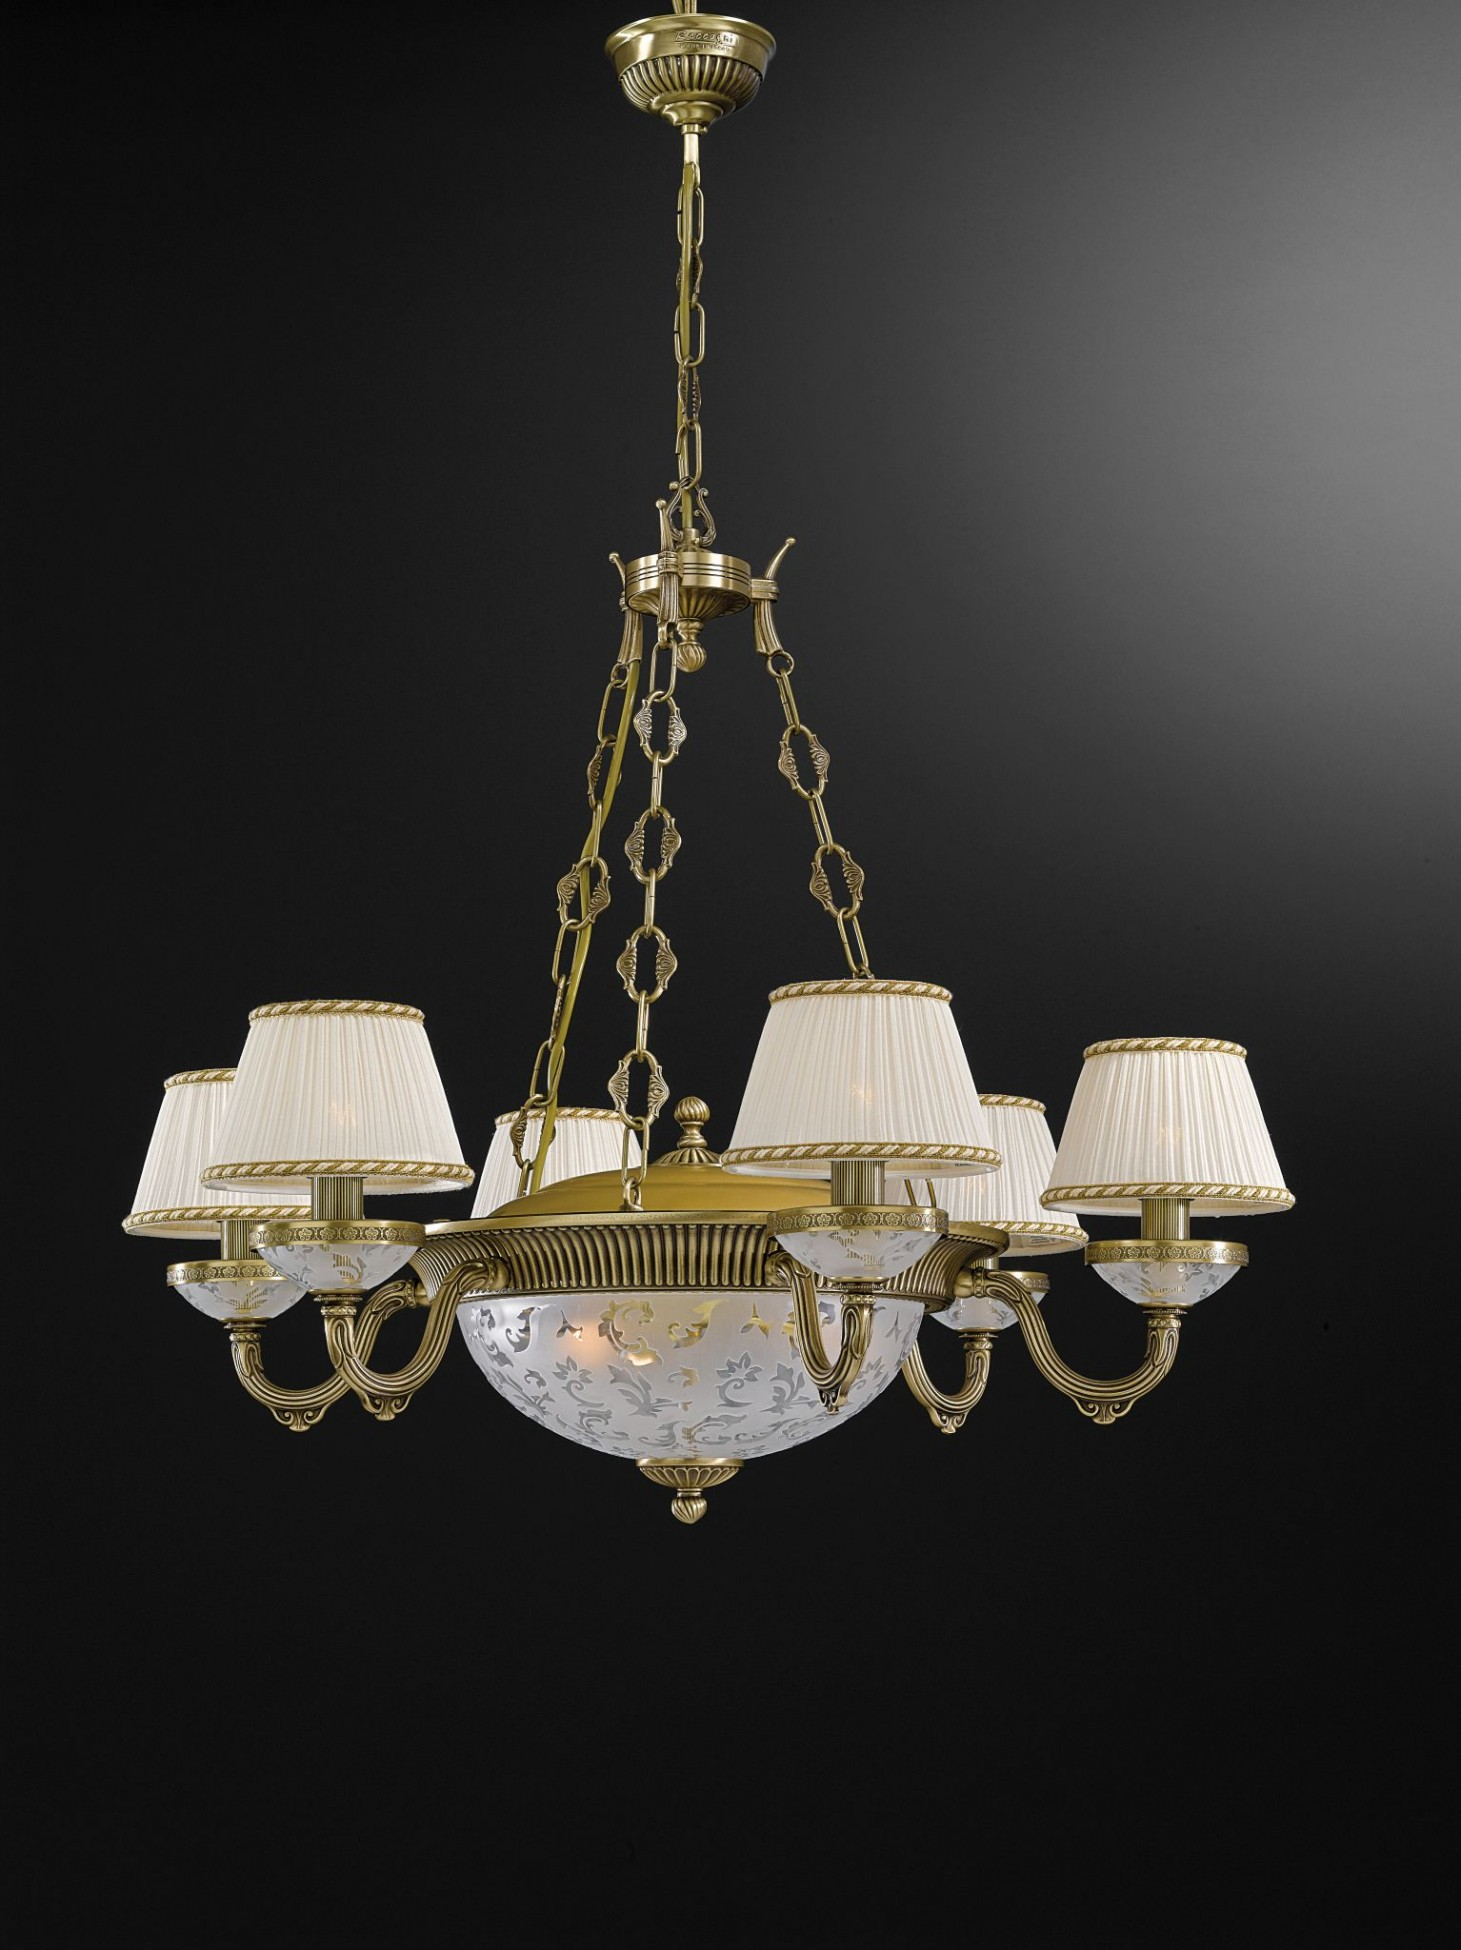 9 Lights Brass And Frosted Glass Chandelier With Lamp Shades